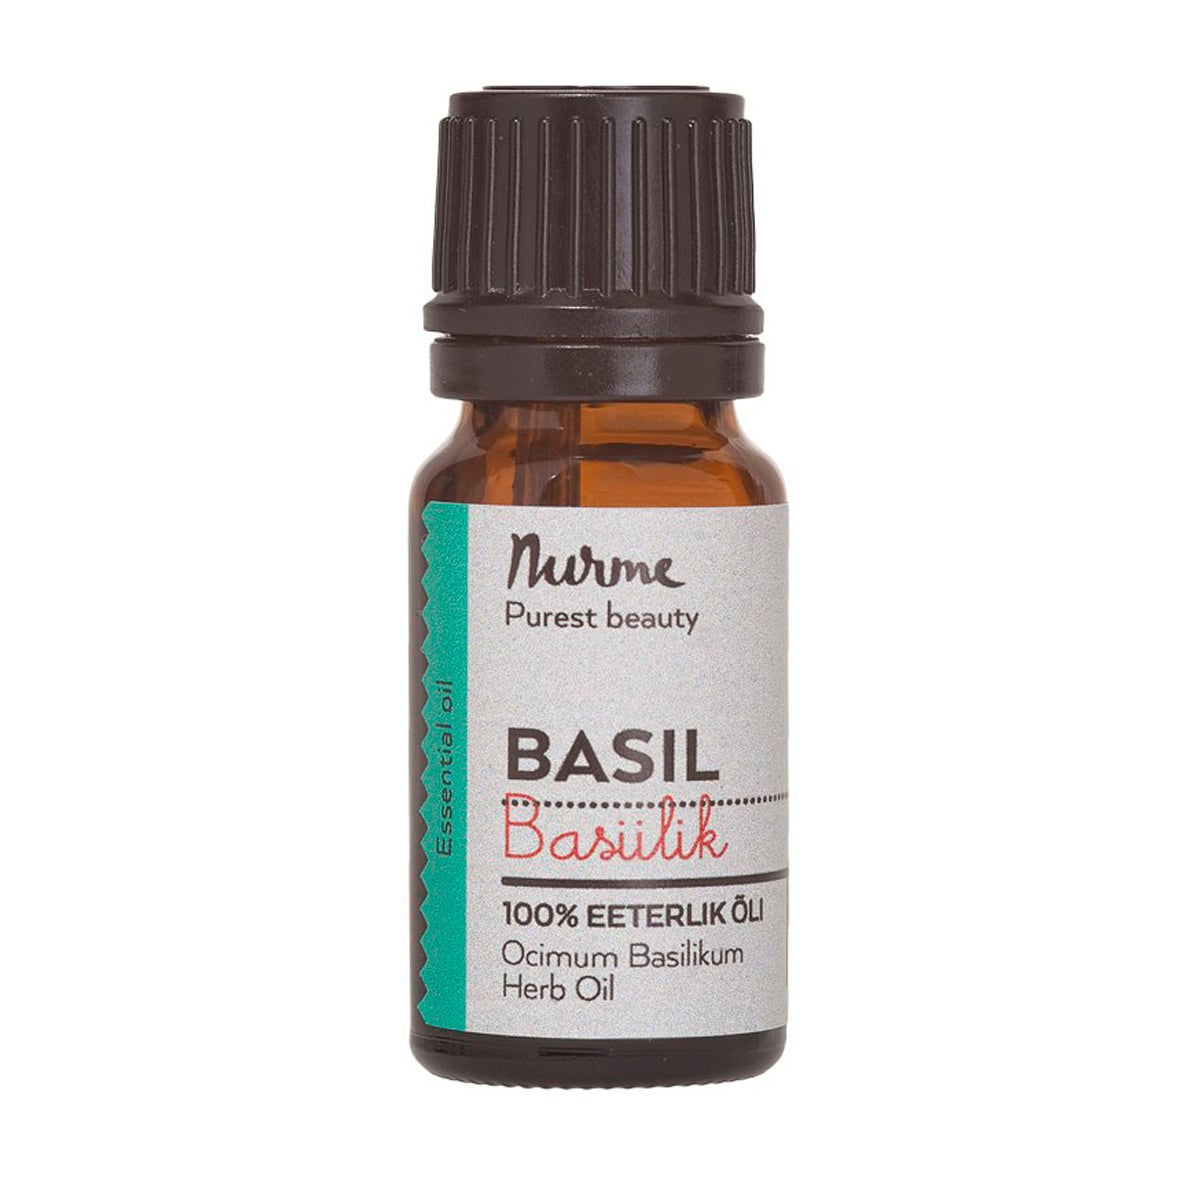 Nurme Basil Essential Oil